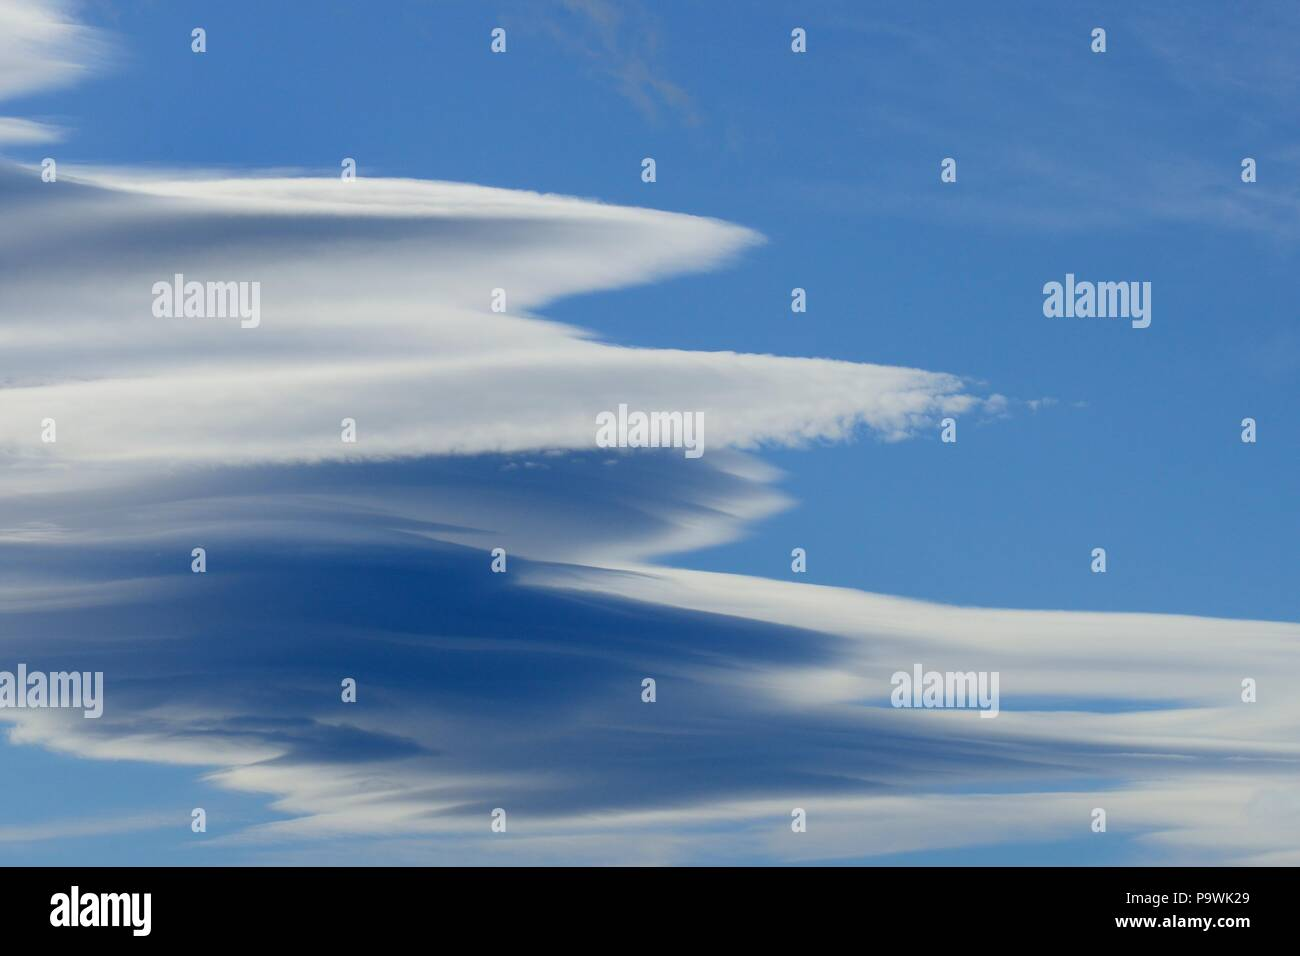 Cloudy sky, background image - Stock Image